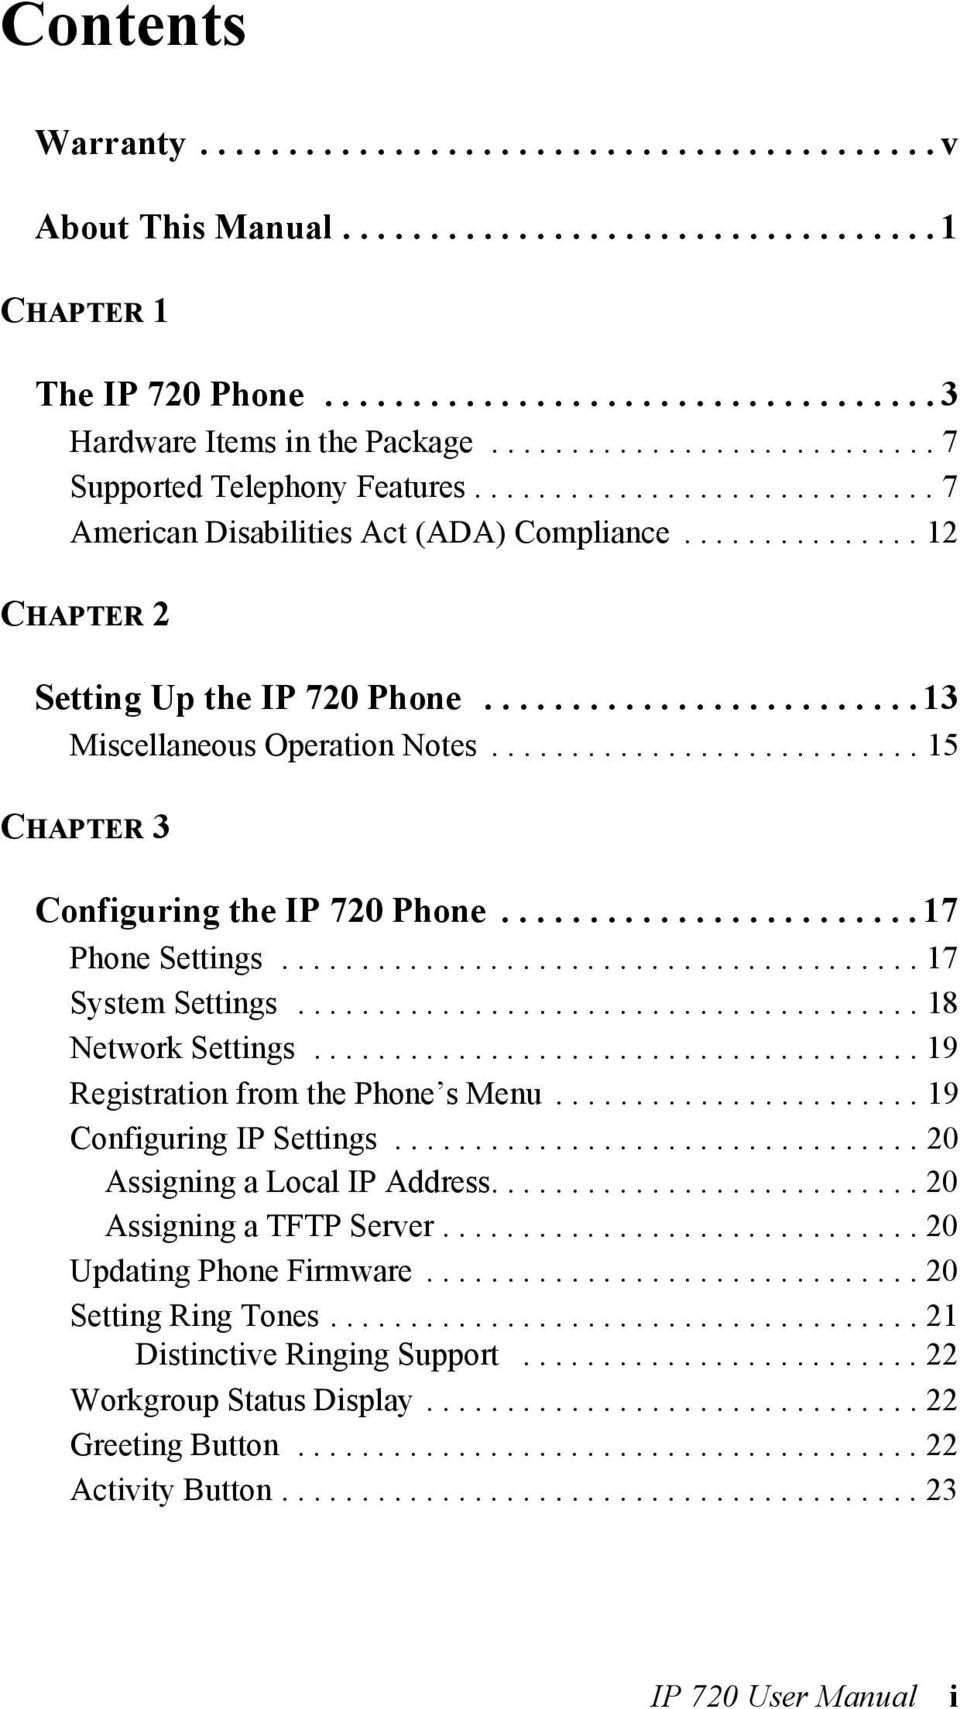 ........................ 13 Miscellaneous Operation Notes........................... 15 CHAPTER 3 Configuring the IP 720 Phone........................ 17 Phone Settings........................................ 17 System Settings.